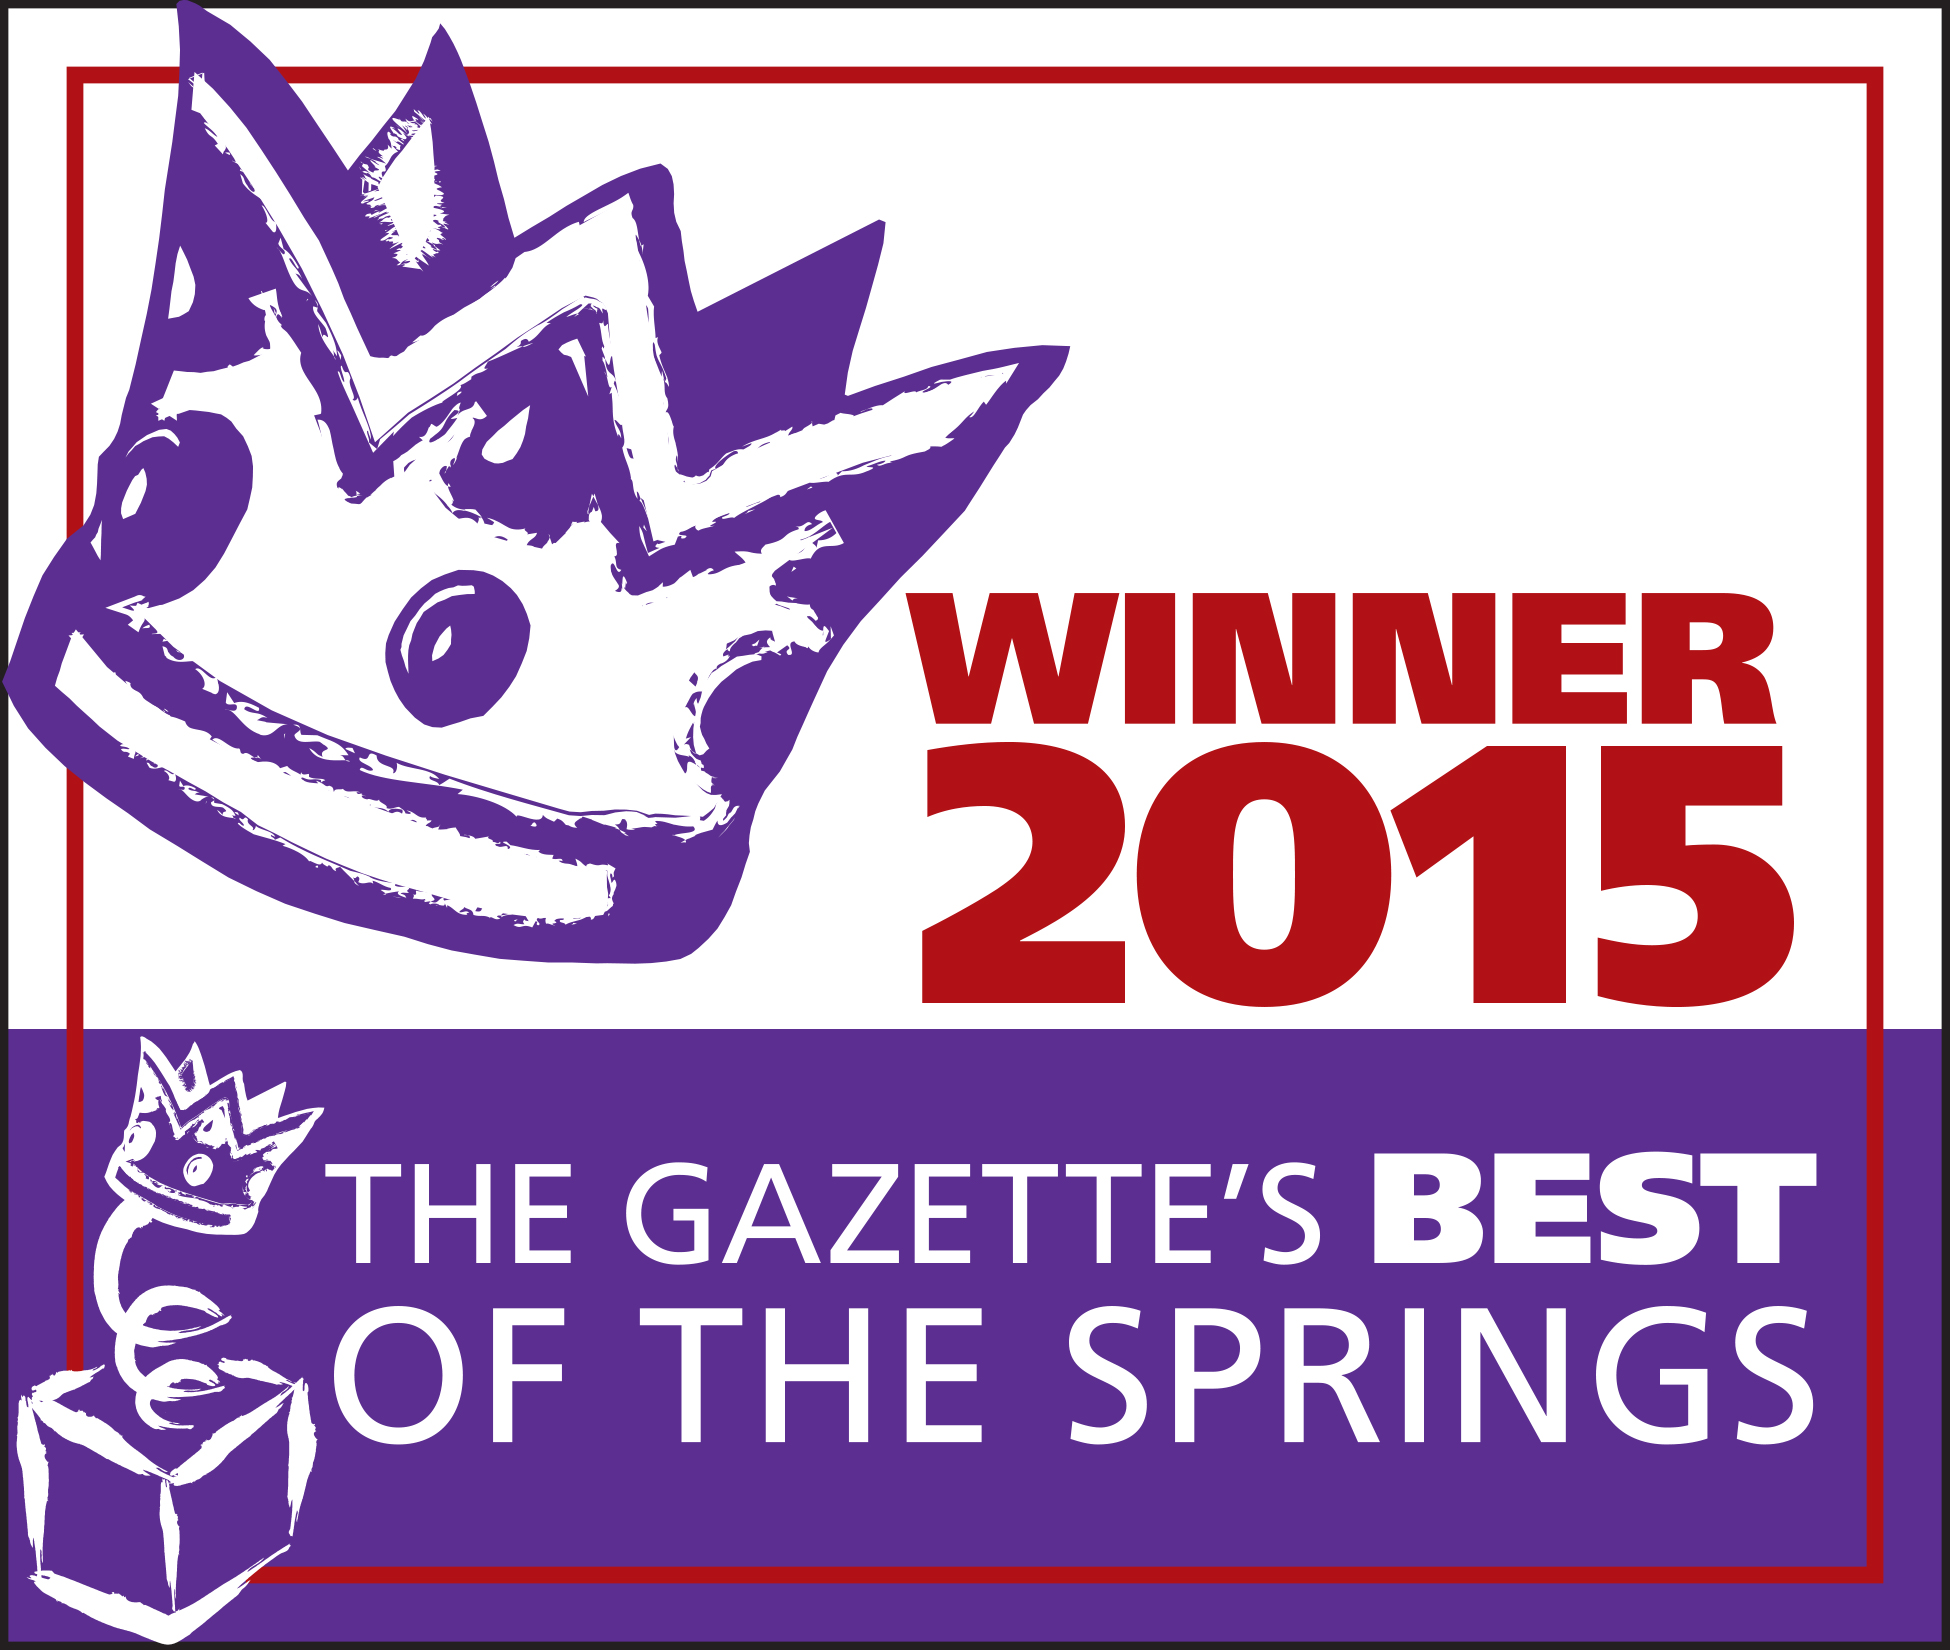 2015 Winner for The Gazette's Best of the Springs Award